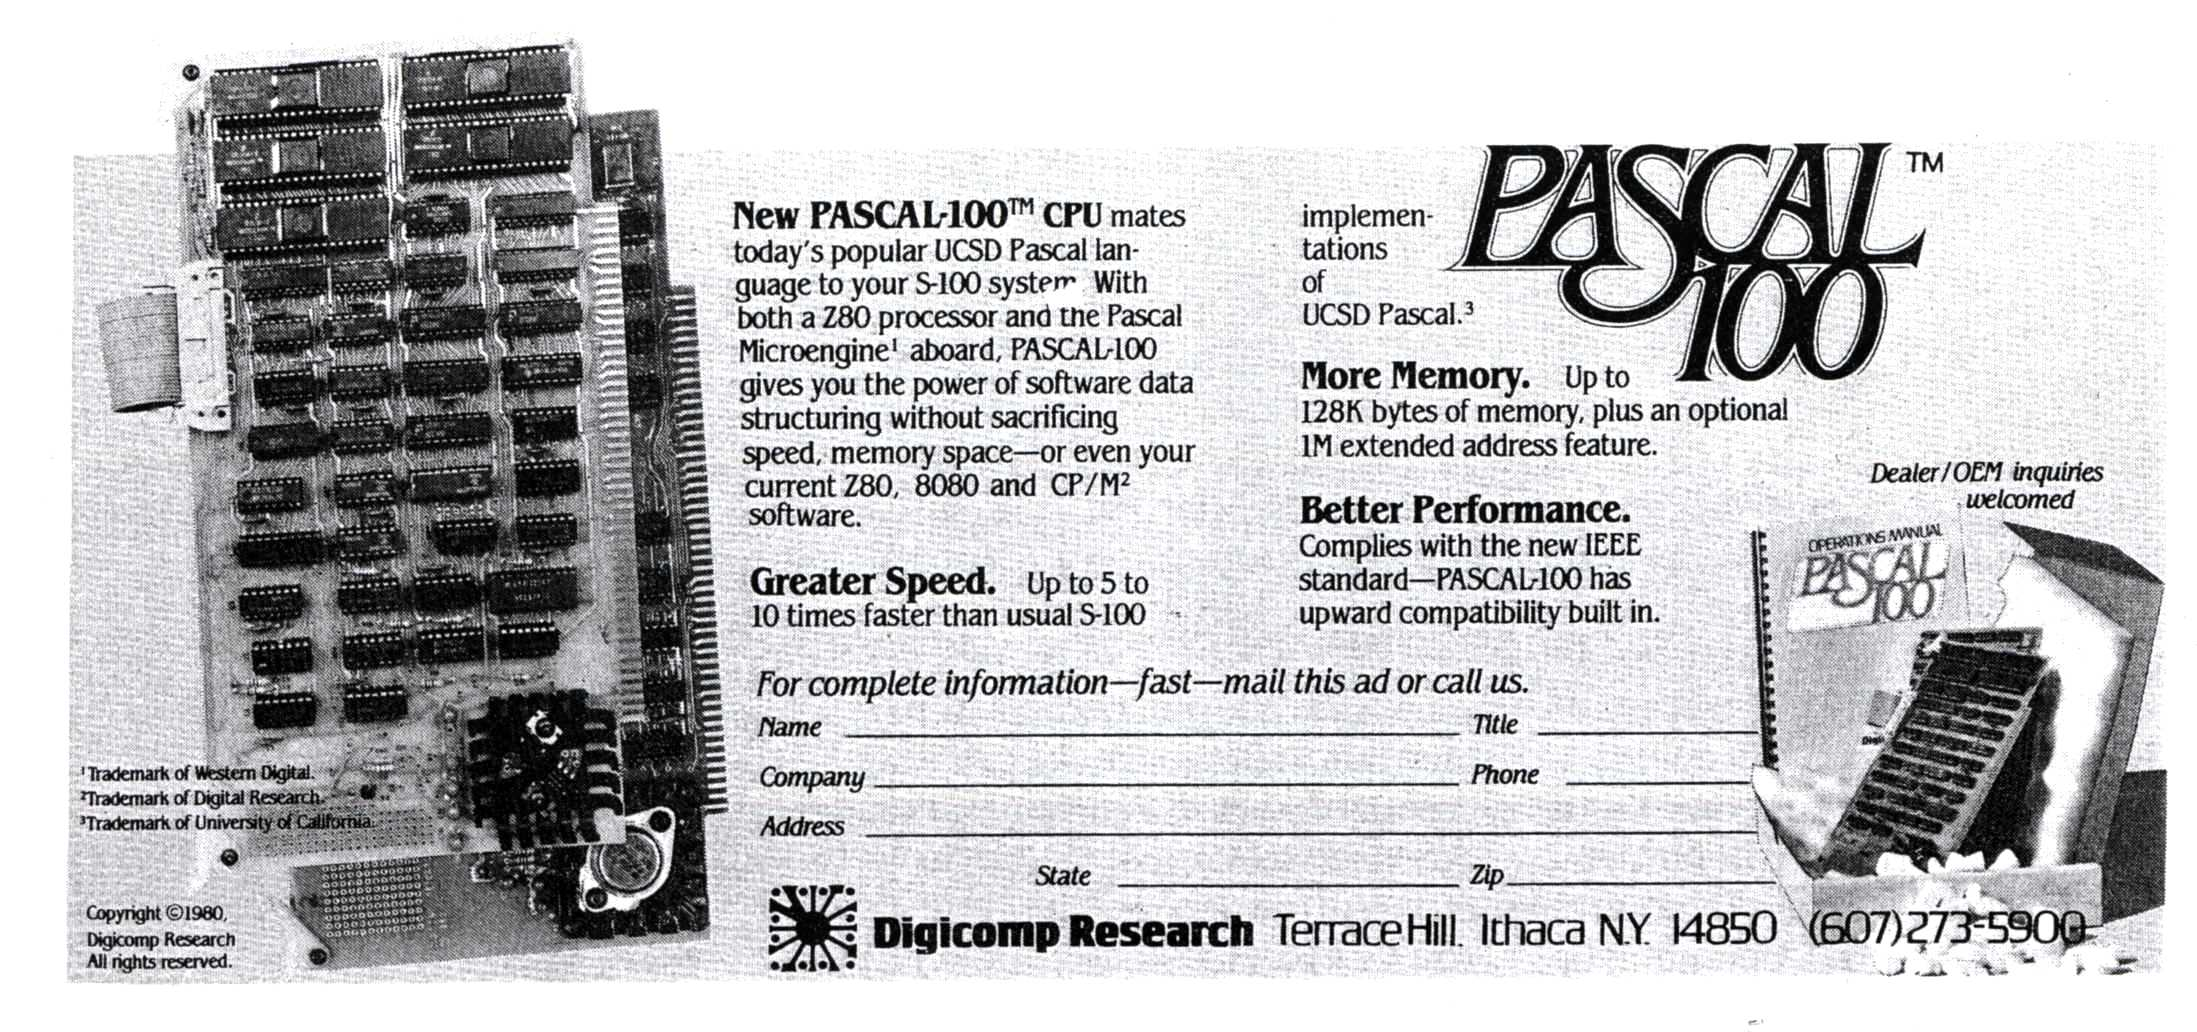 Advertisement for the Digicomp PASCAL-100, a two-board CPU for the S-100 bus based on the WD/9000 Microengine chipset.